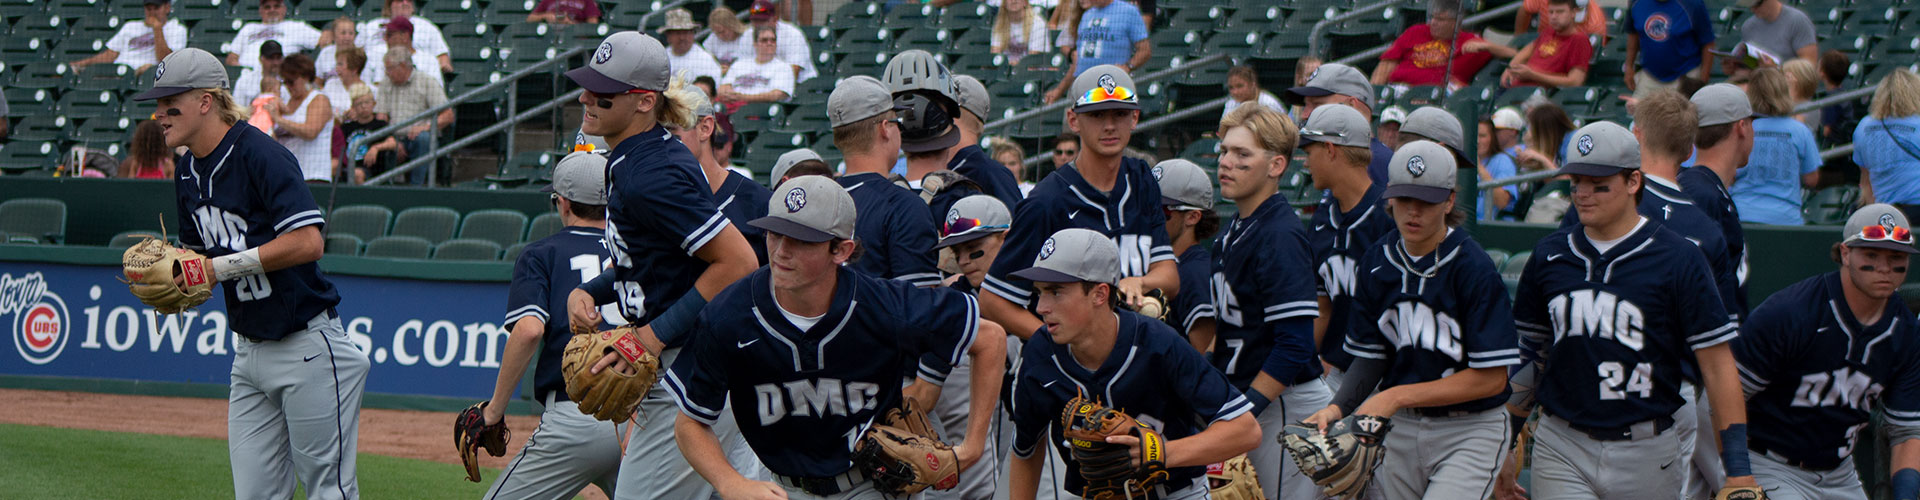 Des Moines Christian School Baseball Players